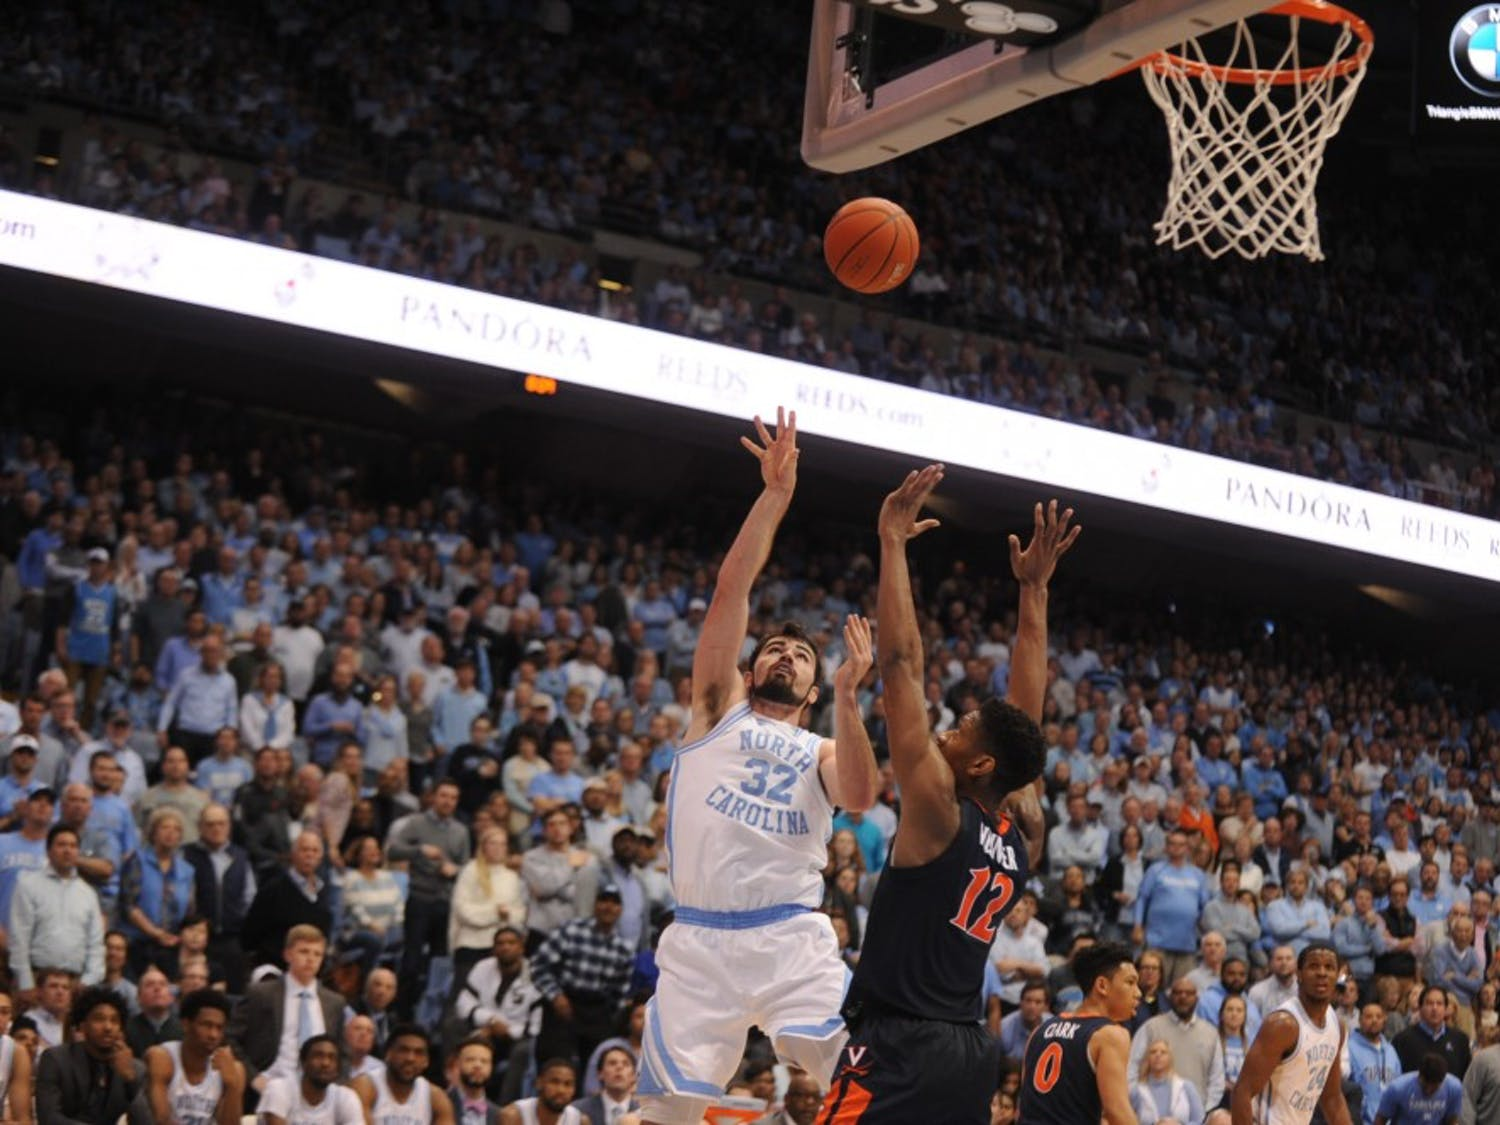 Virgina redshirt sophomore guard De'Andre Hunter (12) guards UNC senior forward Luke Maye (32) as he attempts to score on Monday, Feb. 11, 2019 in the Smith Center. UNC lost 61-69.